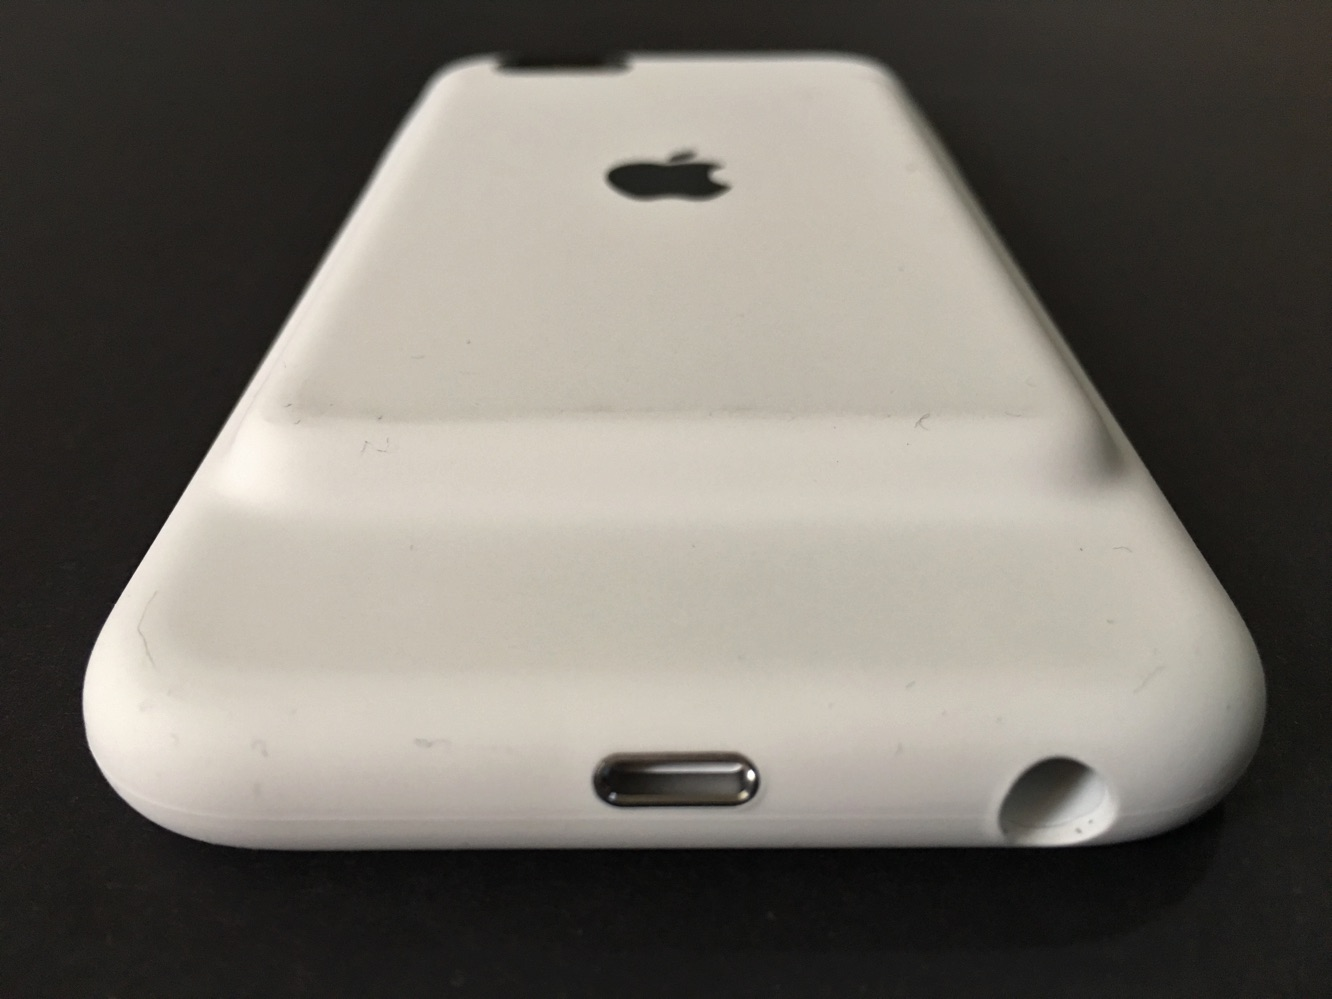 Review: Apple iPhone 6s Smart Battery Case 5